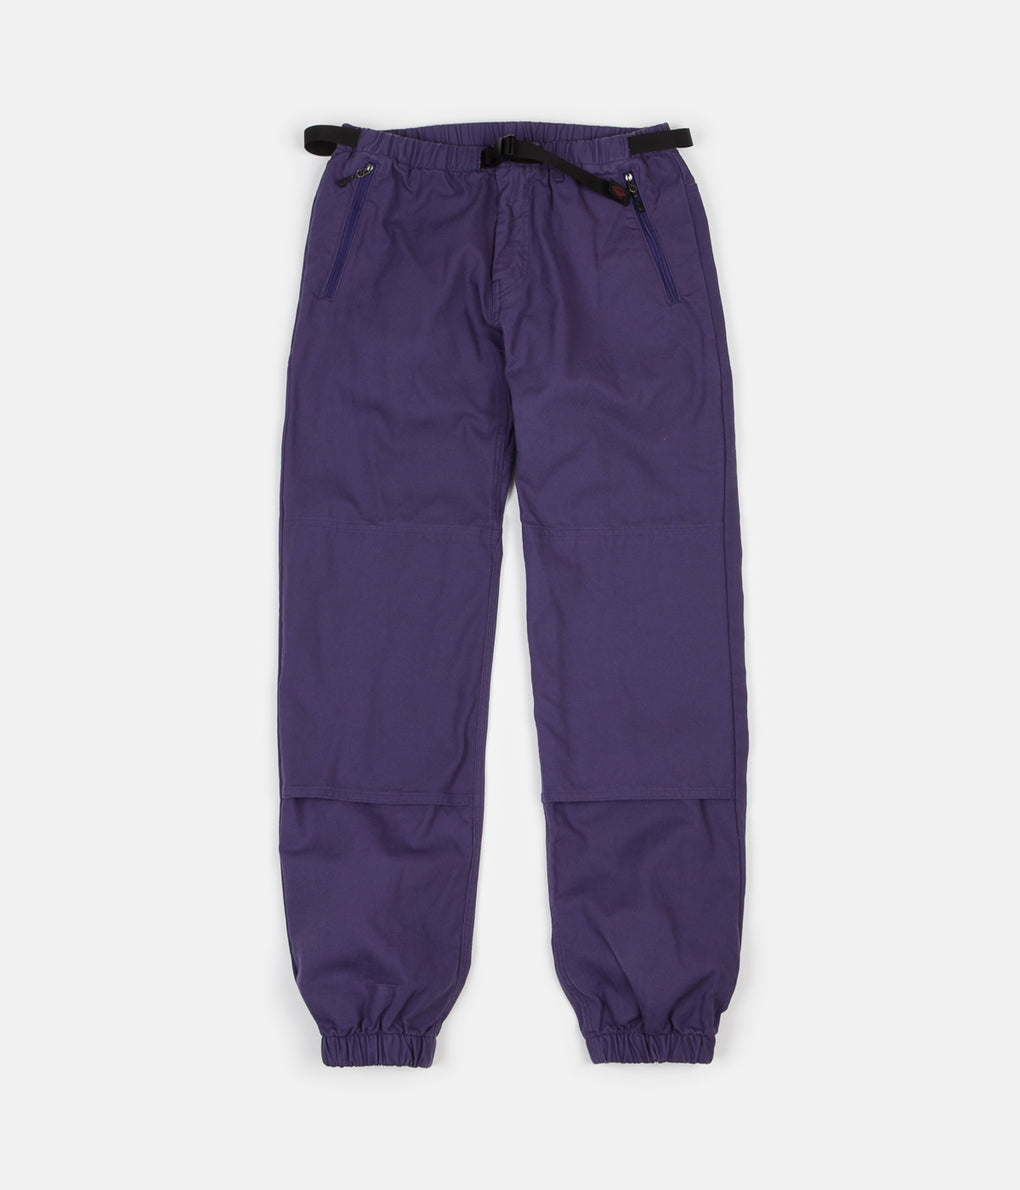 Battenwear Bouldering Pants - Purple